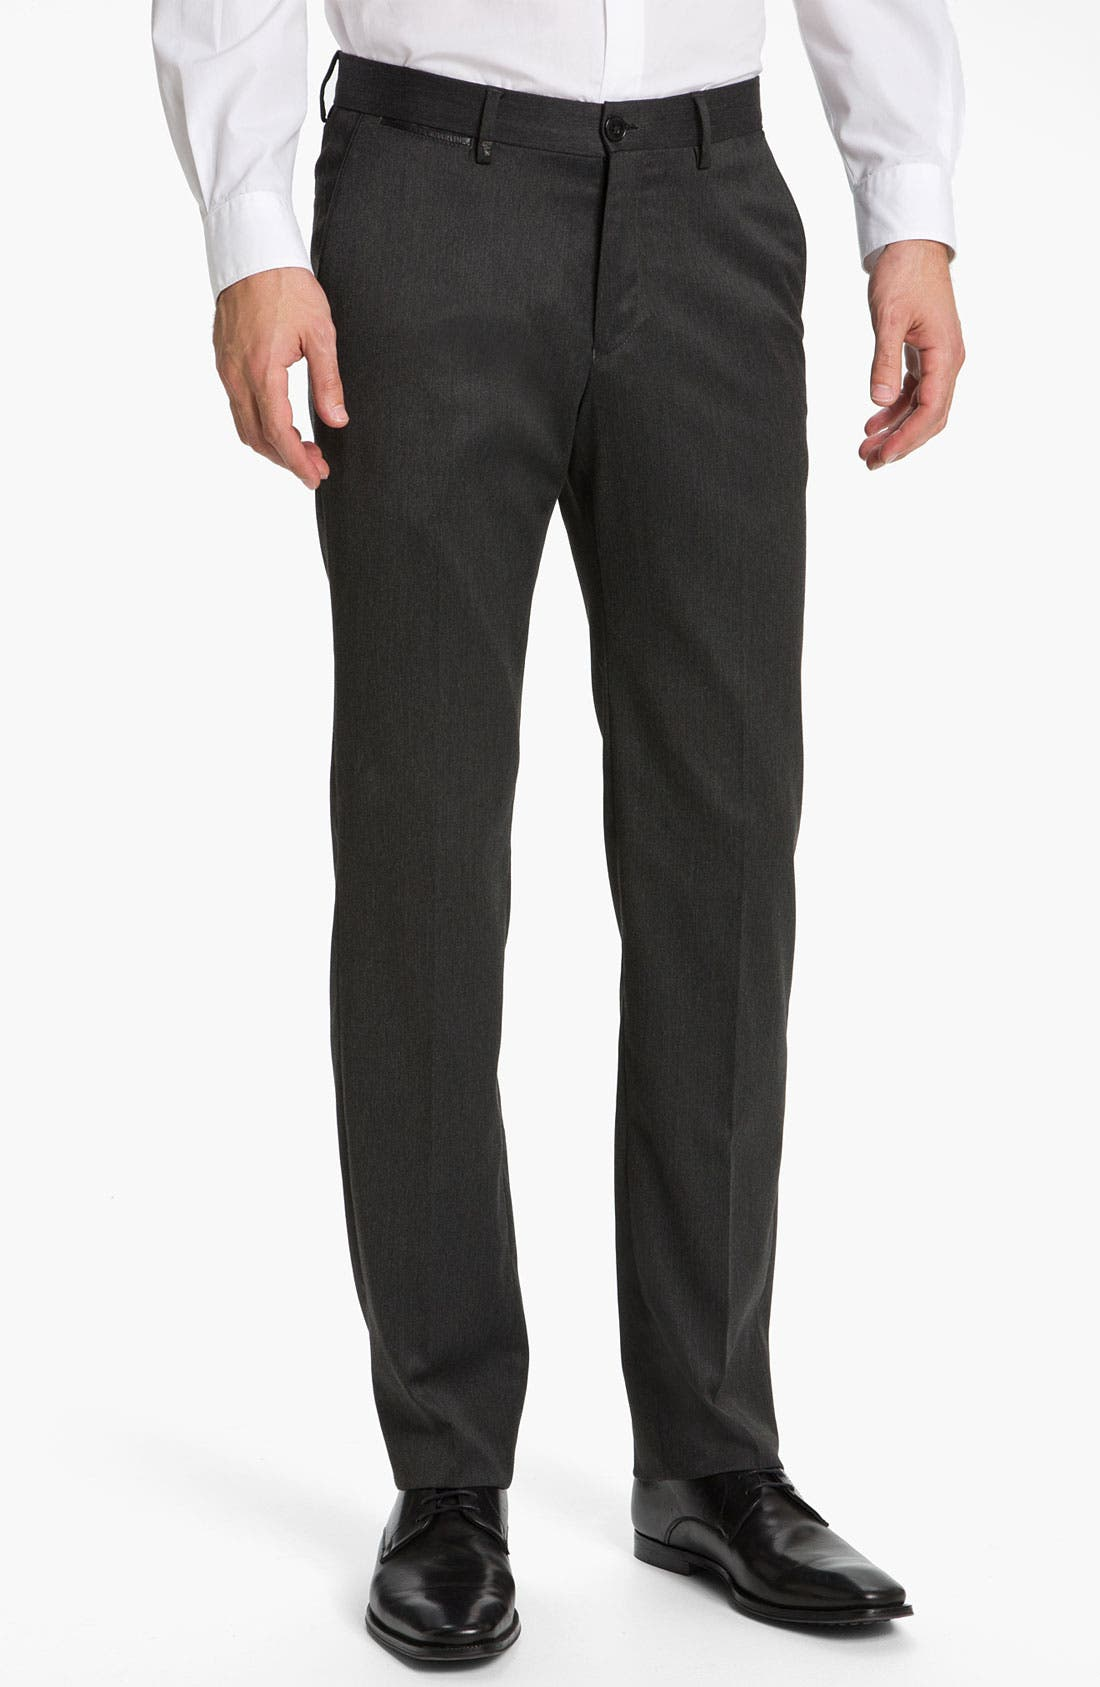 Alternate Image 1 Selected - Versace Flat Front Trousers (Online Only)